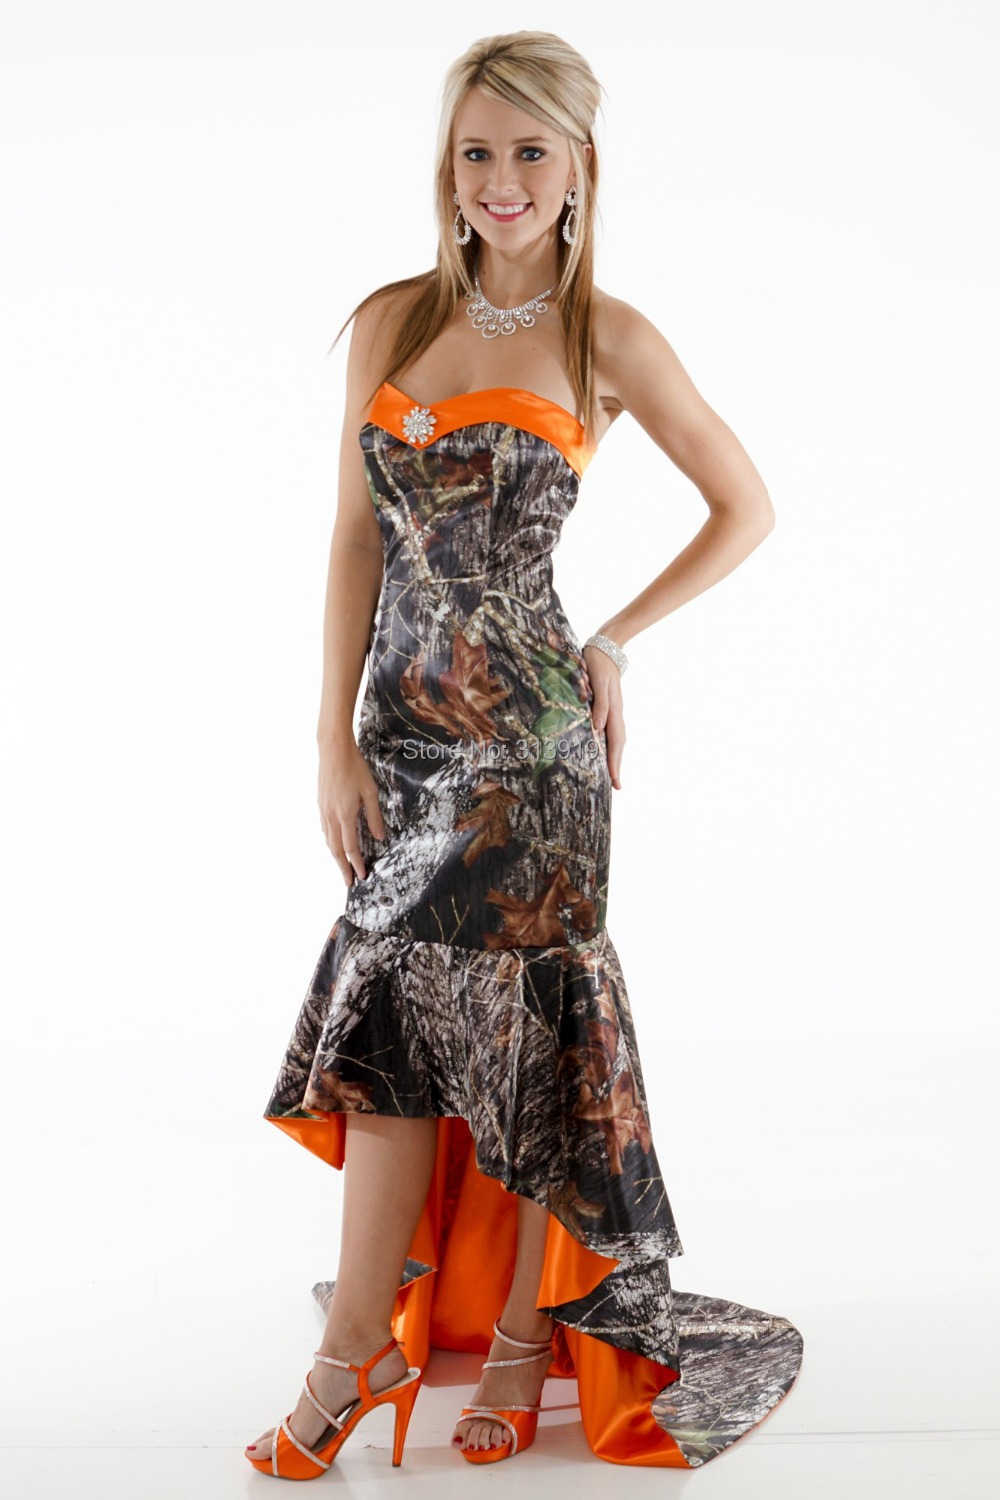 Camouflage Prom Tuxedos _Prom Dresses_dressesss